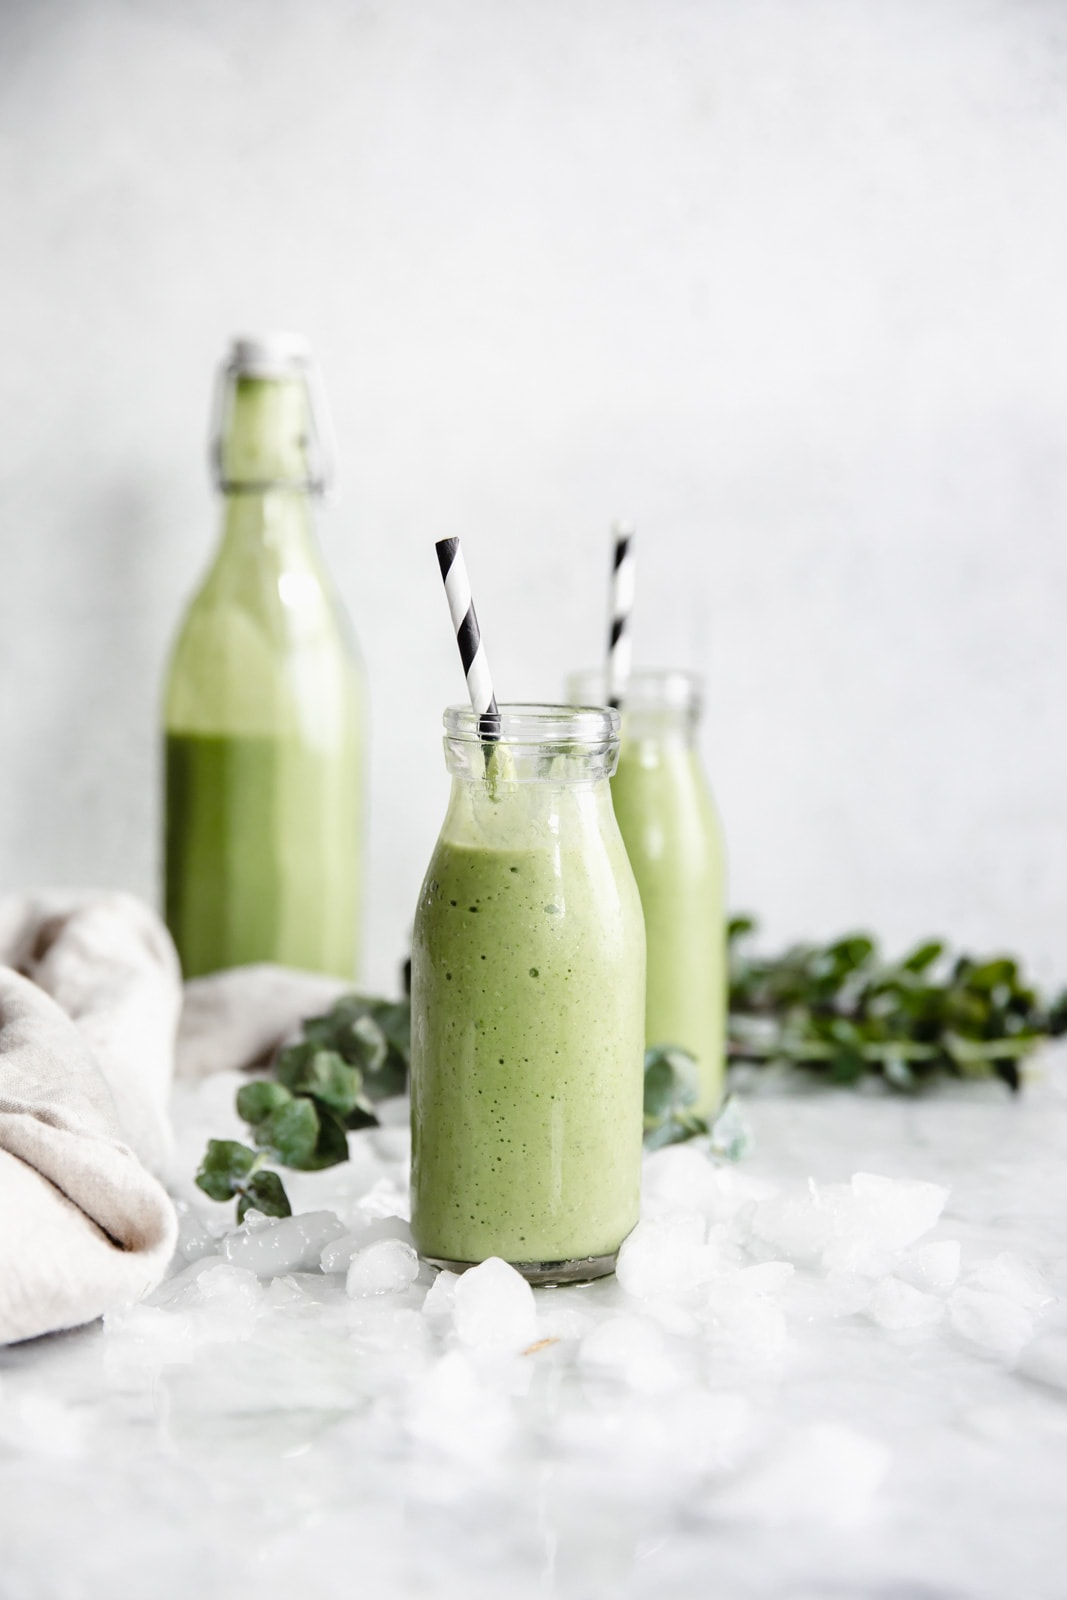 This easy green smoothie recipe tastes good AND is good for you. Start your morning off right with with this protein packed green smoothie.